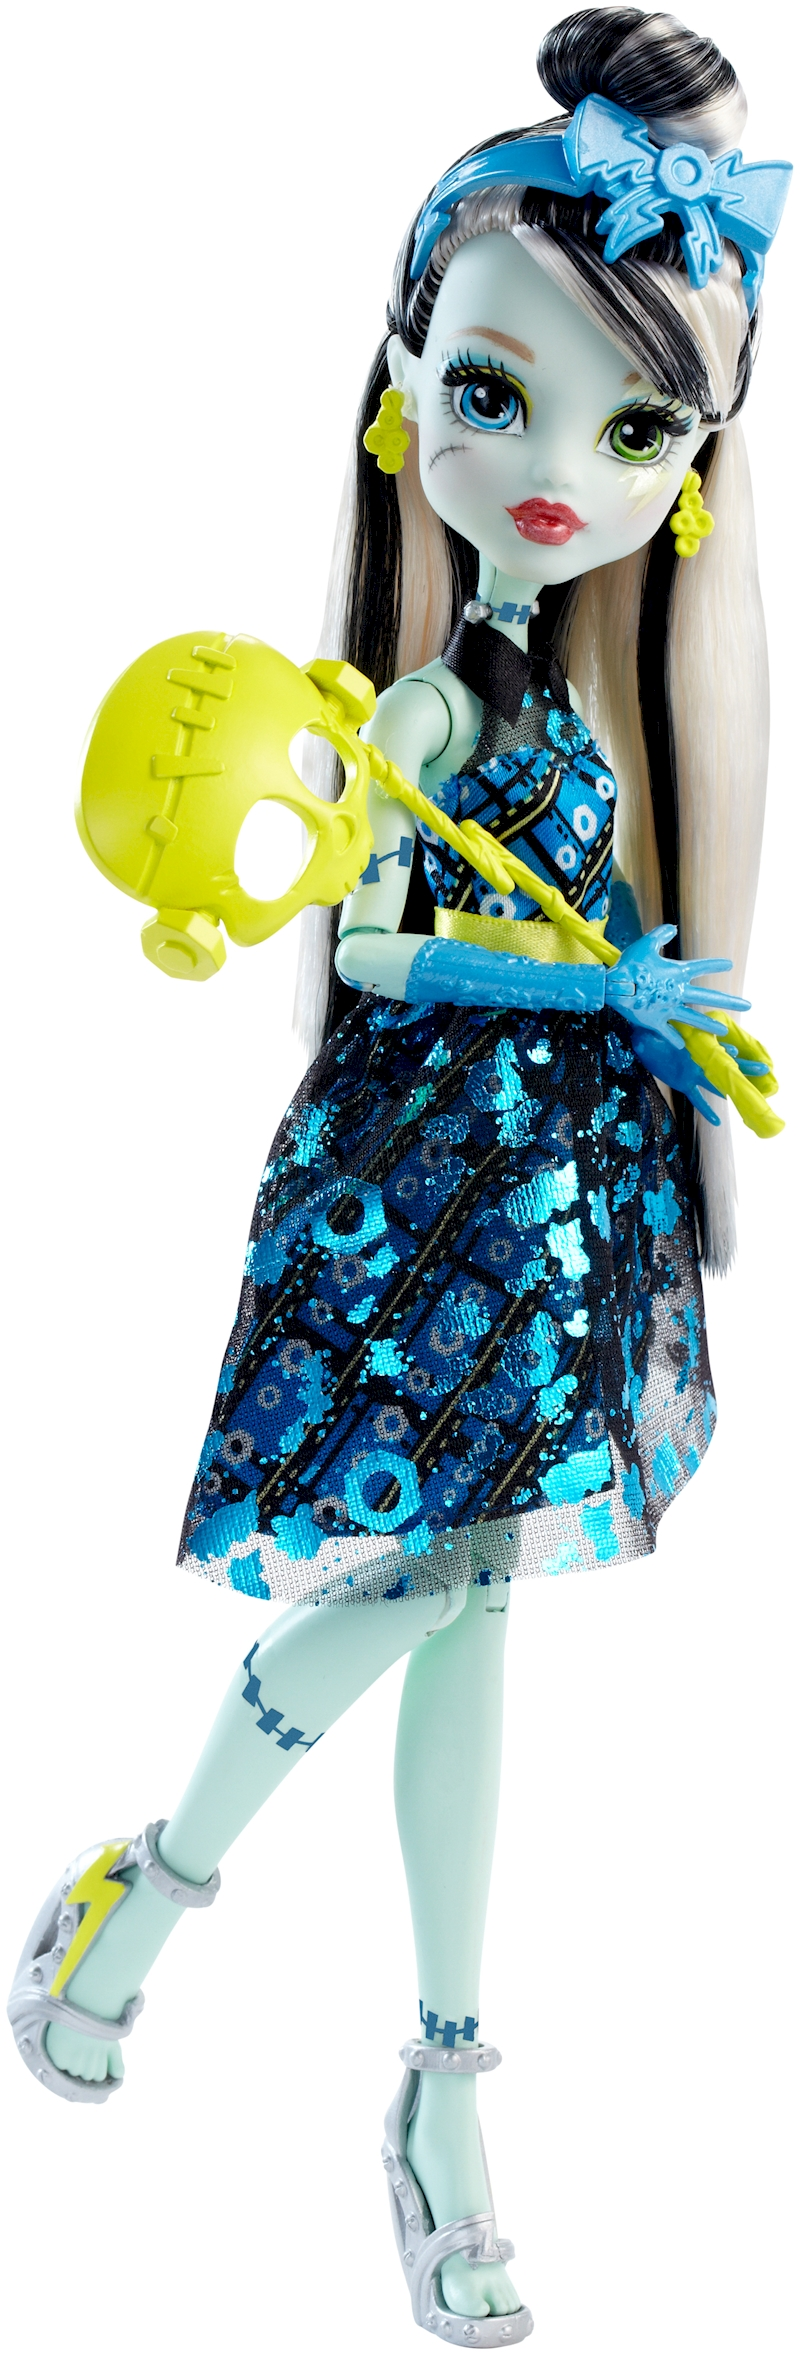 Monster high welcome to monster high frankie stein doll shop monster high doll accessories - Image monster high ...